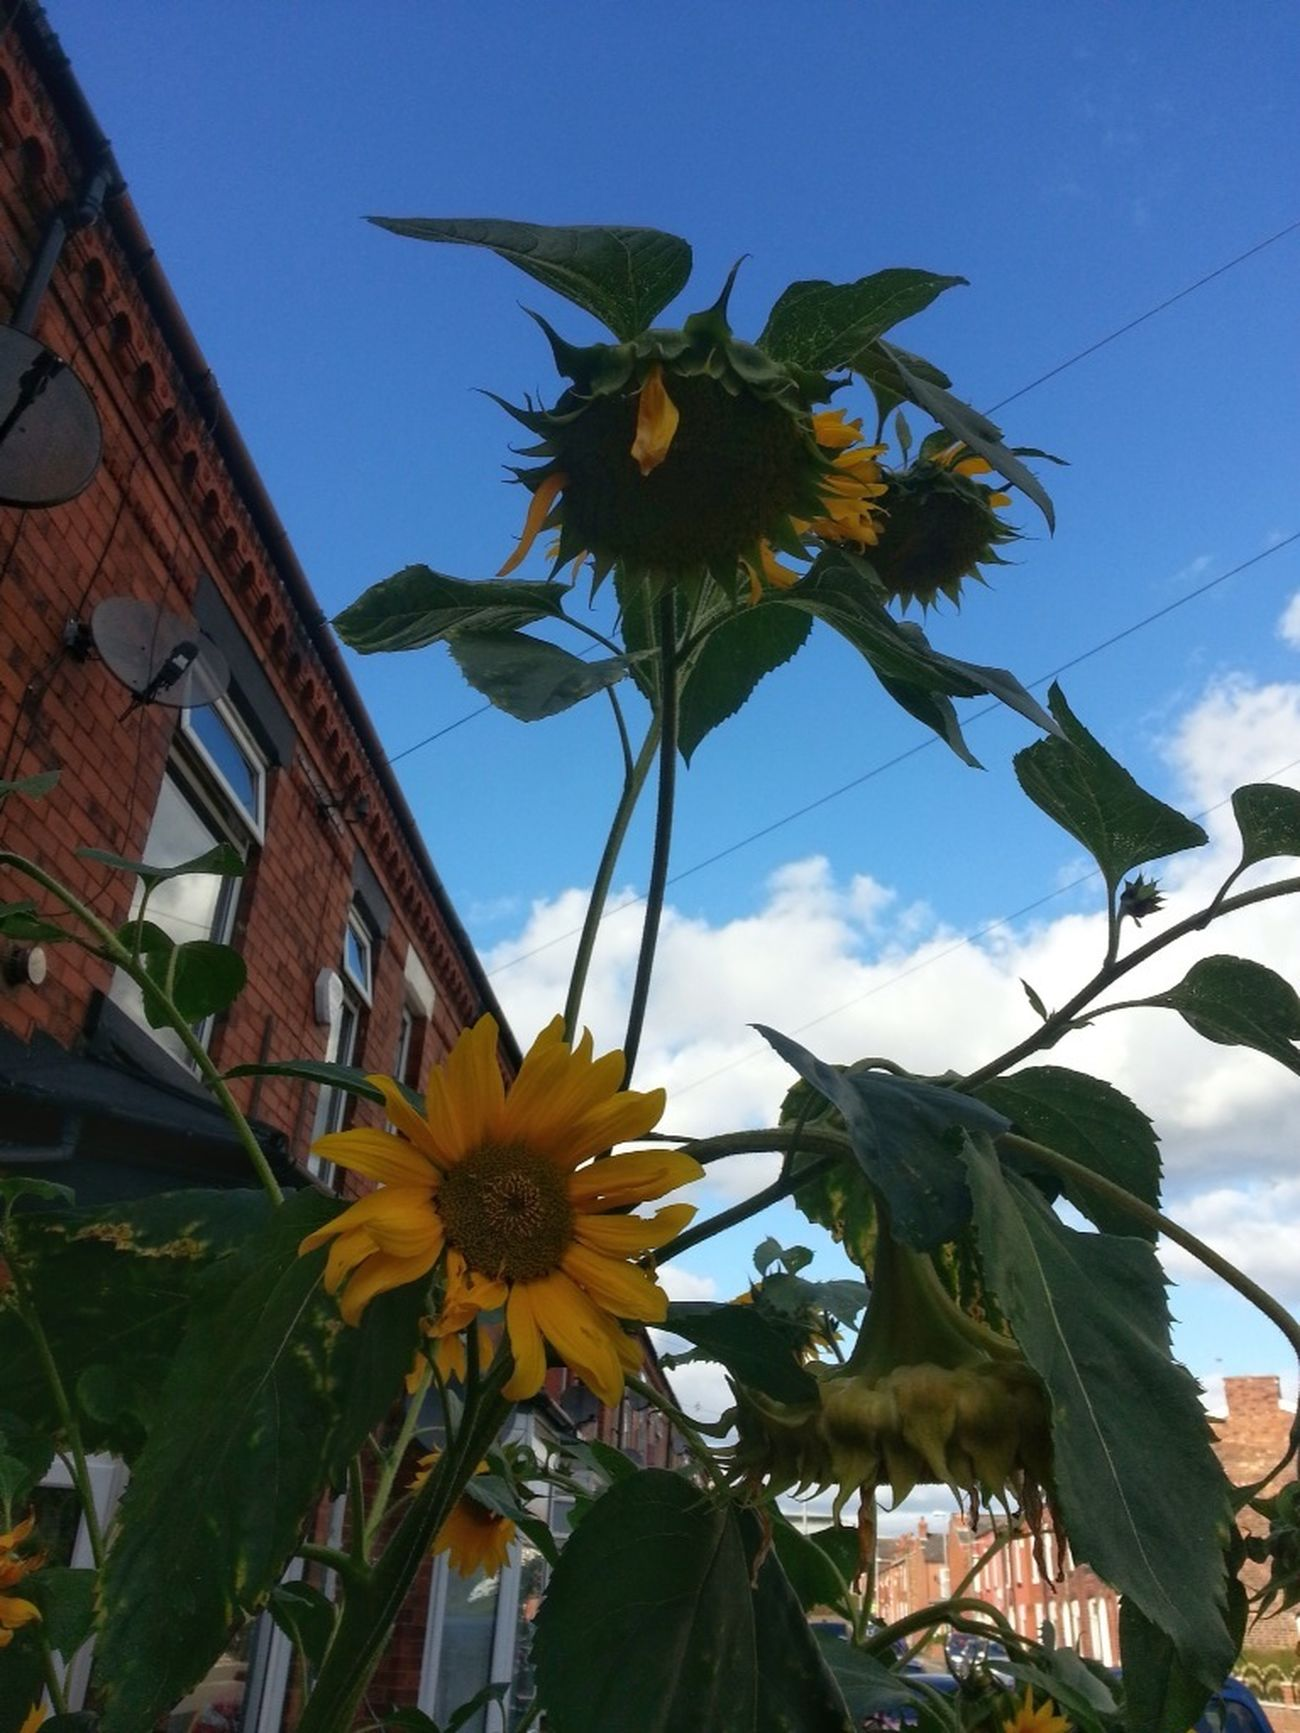 More Of The Same Sunflowers🌻 Urban Exploration Good Morning! Blue Sky Autumnbeauty Different Perspective Flowers For My Friends